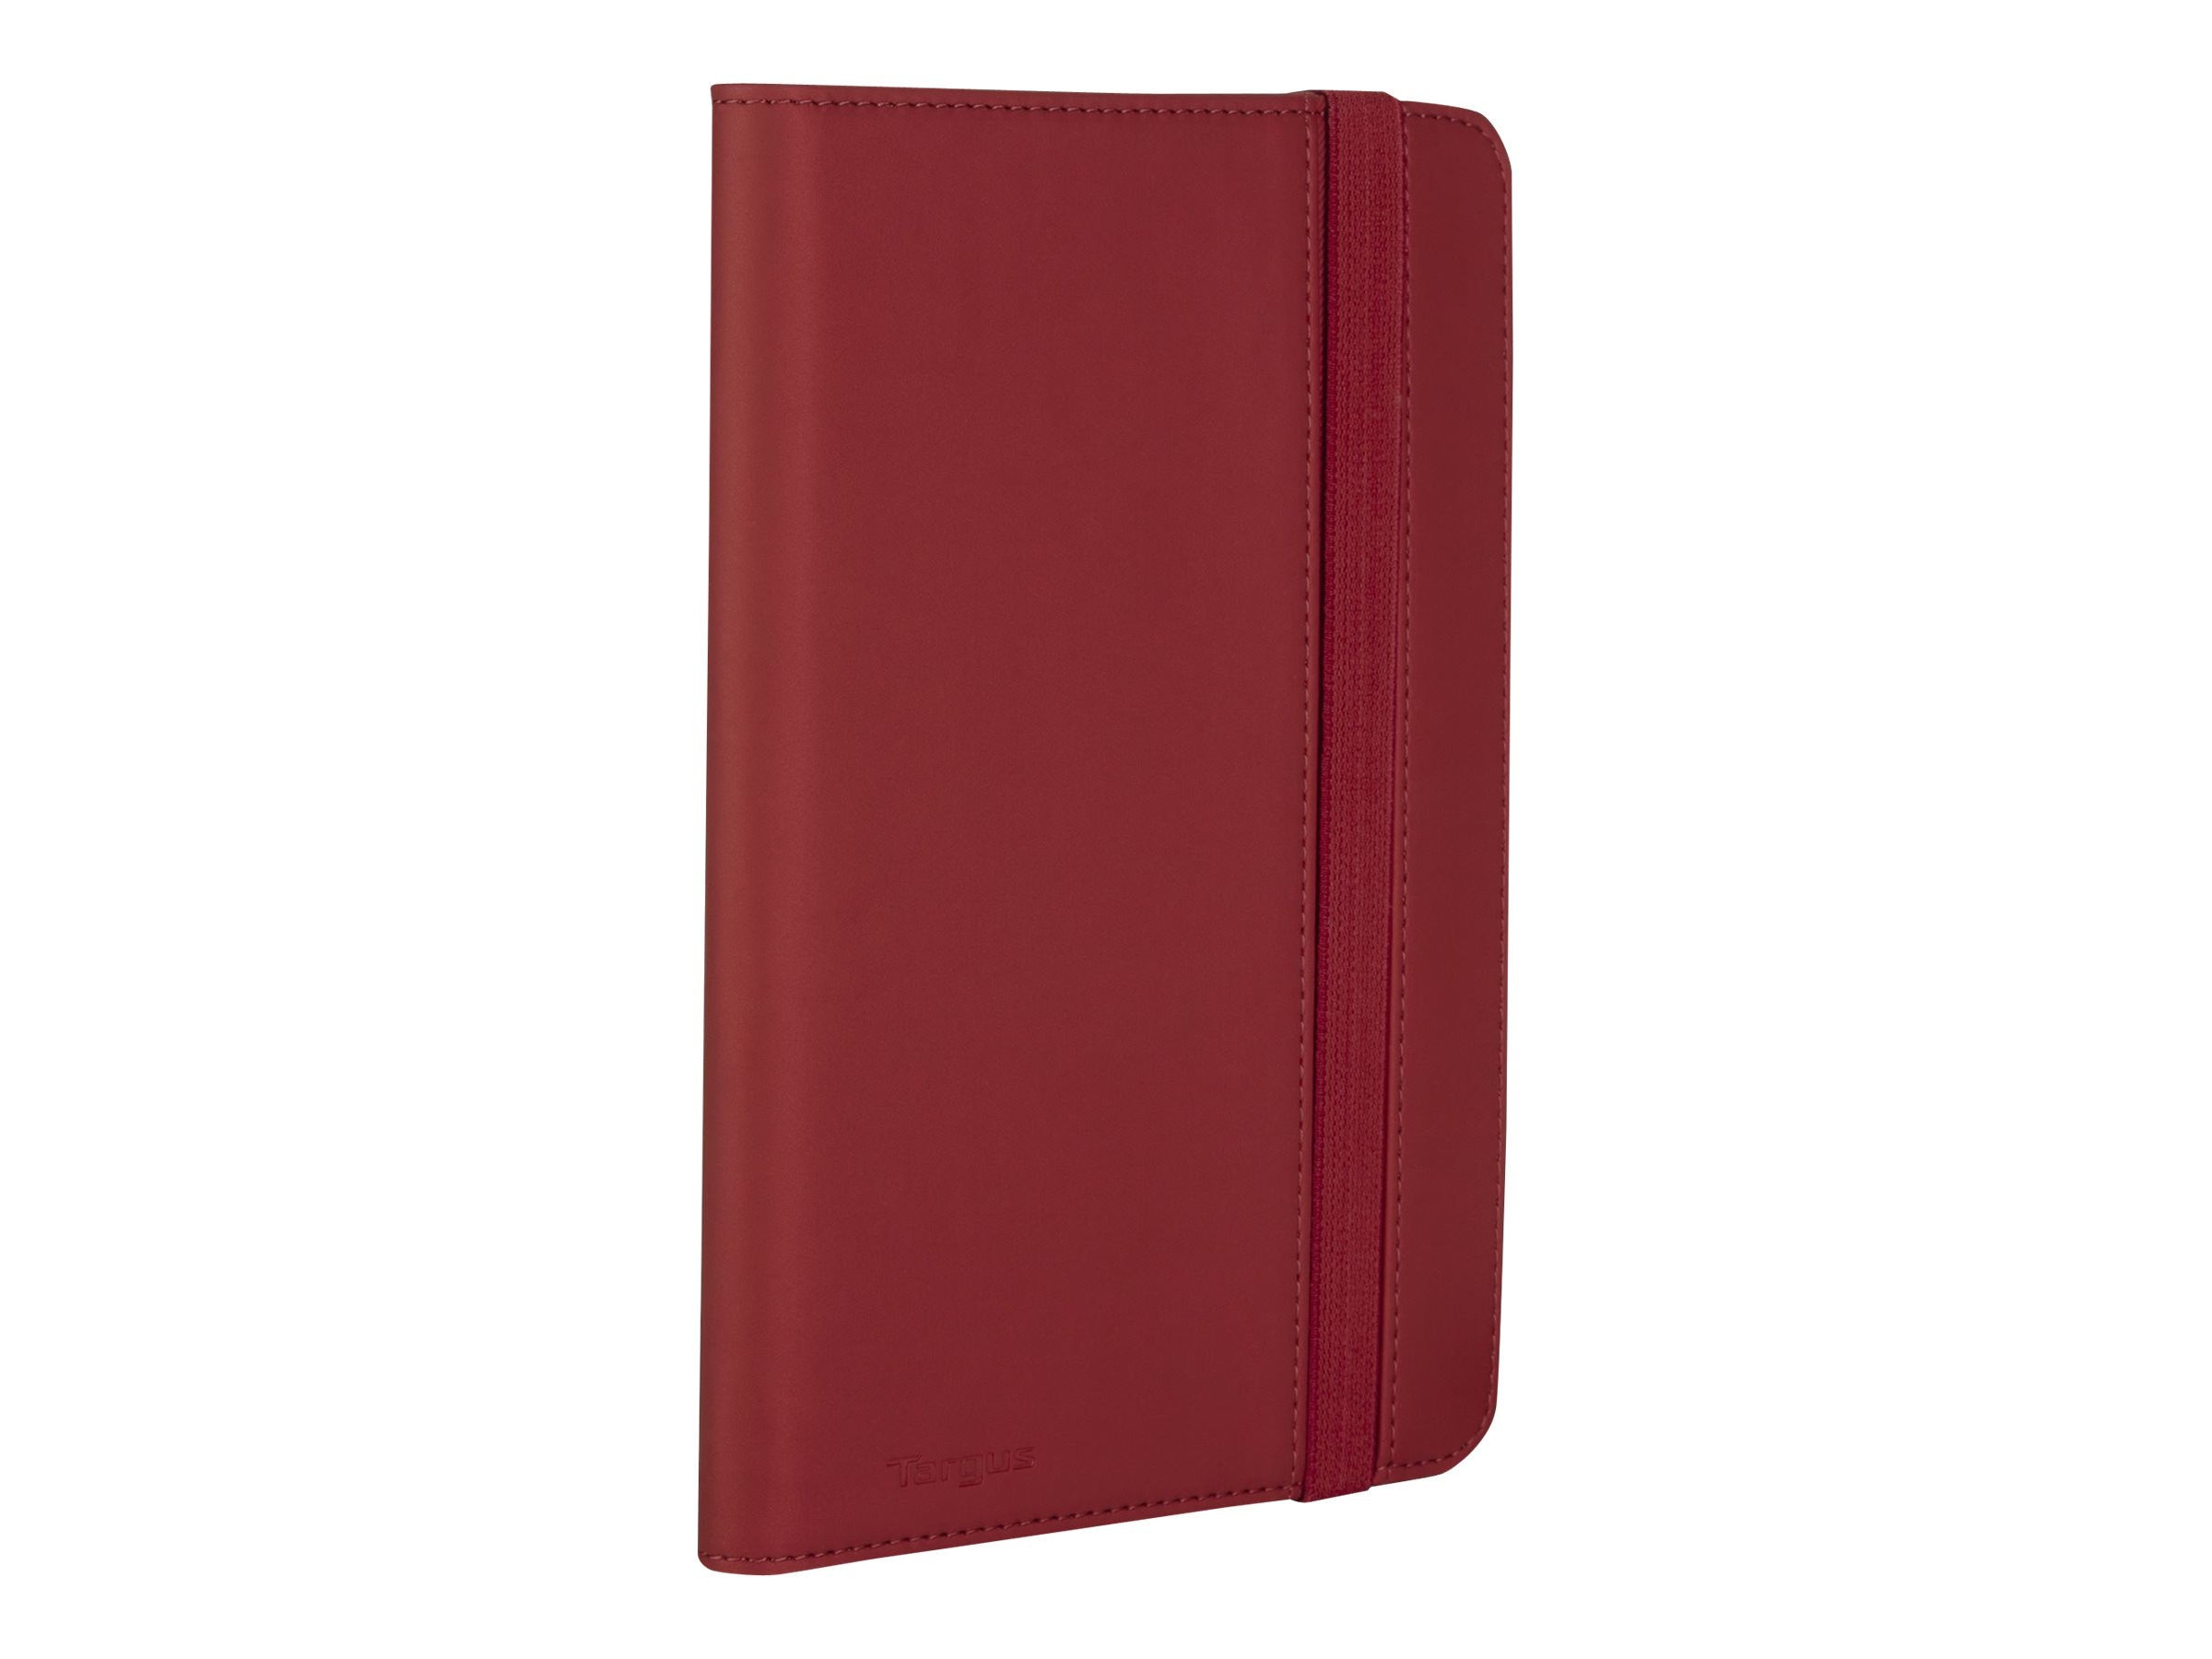 Targus Kickstand Case for Samsung Galaxy Tab 3 7.0, Crimson Red